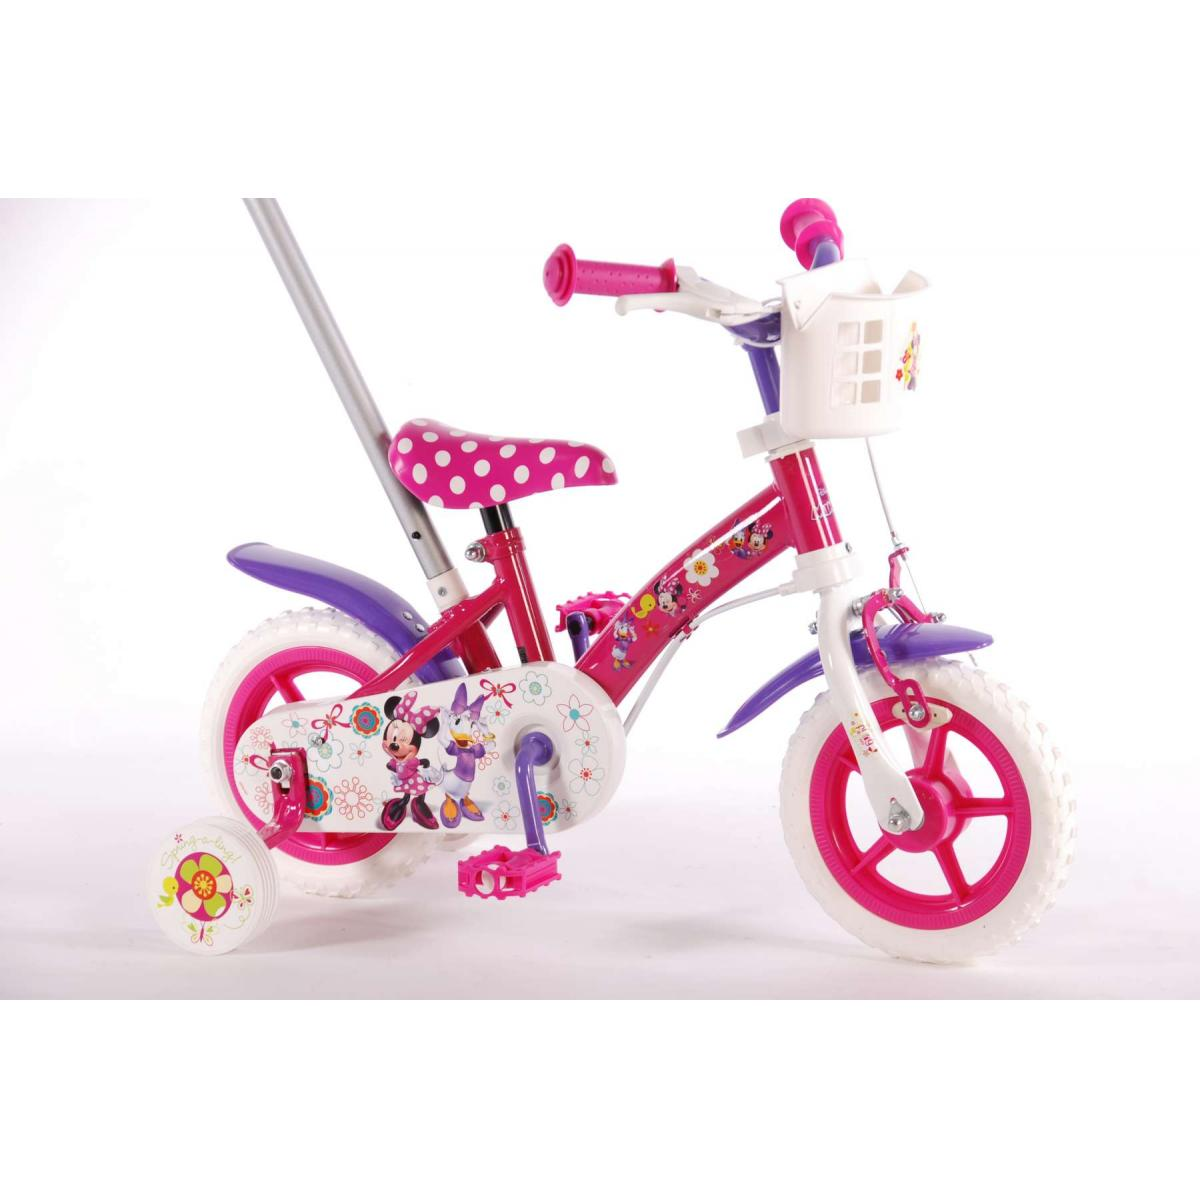 10 zoll kinderfahrrad disney minnie mouse kinder fahrrad. Black Bedroom Furniture Sets. Home Design Ideas